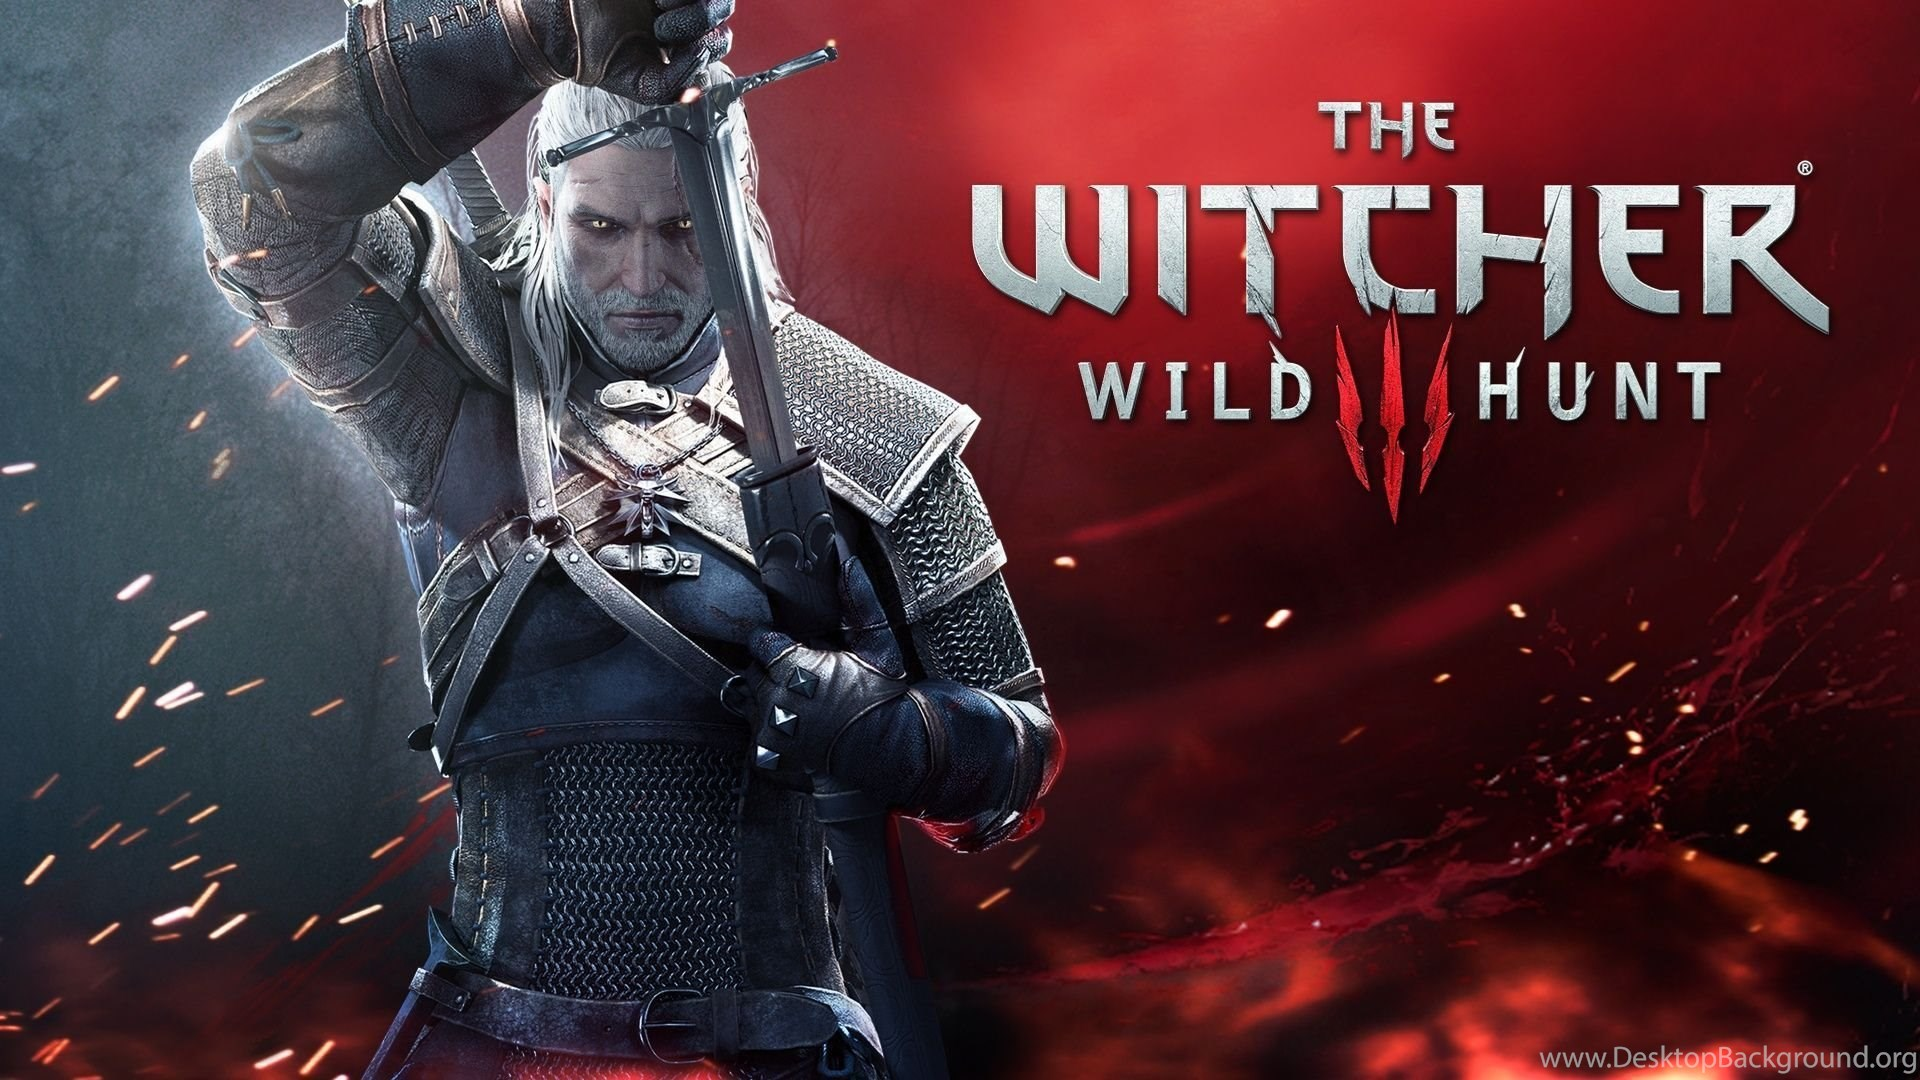 The Witcher 3 Wild Hunt Poster Wallpapers Hd Desktop Background